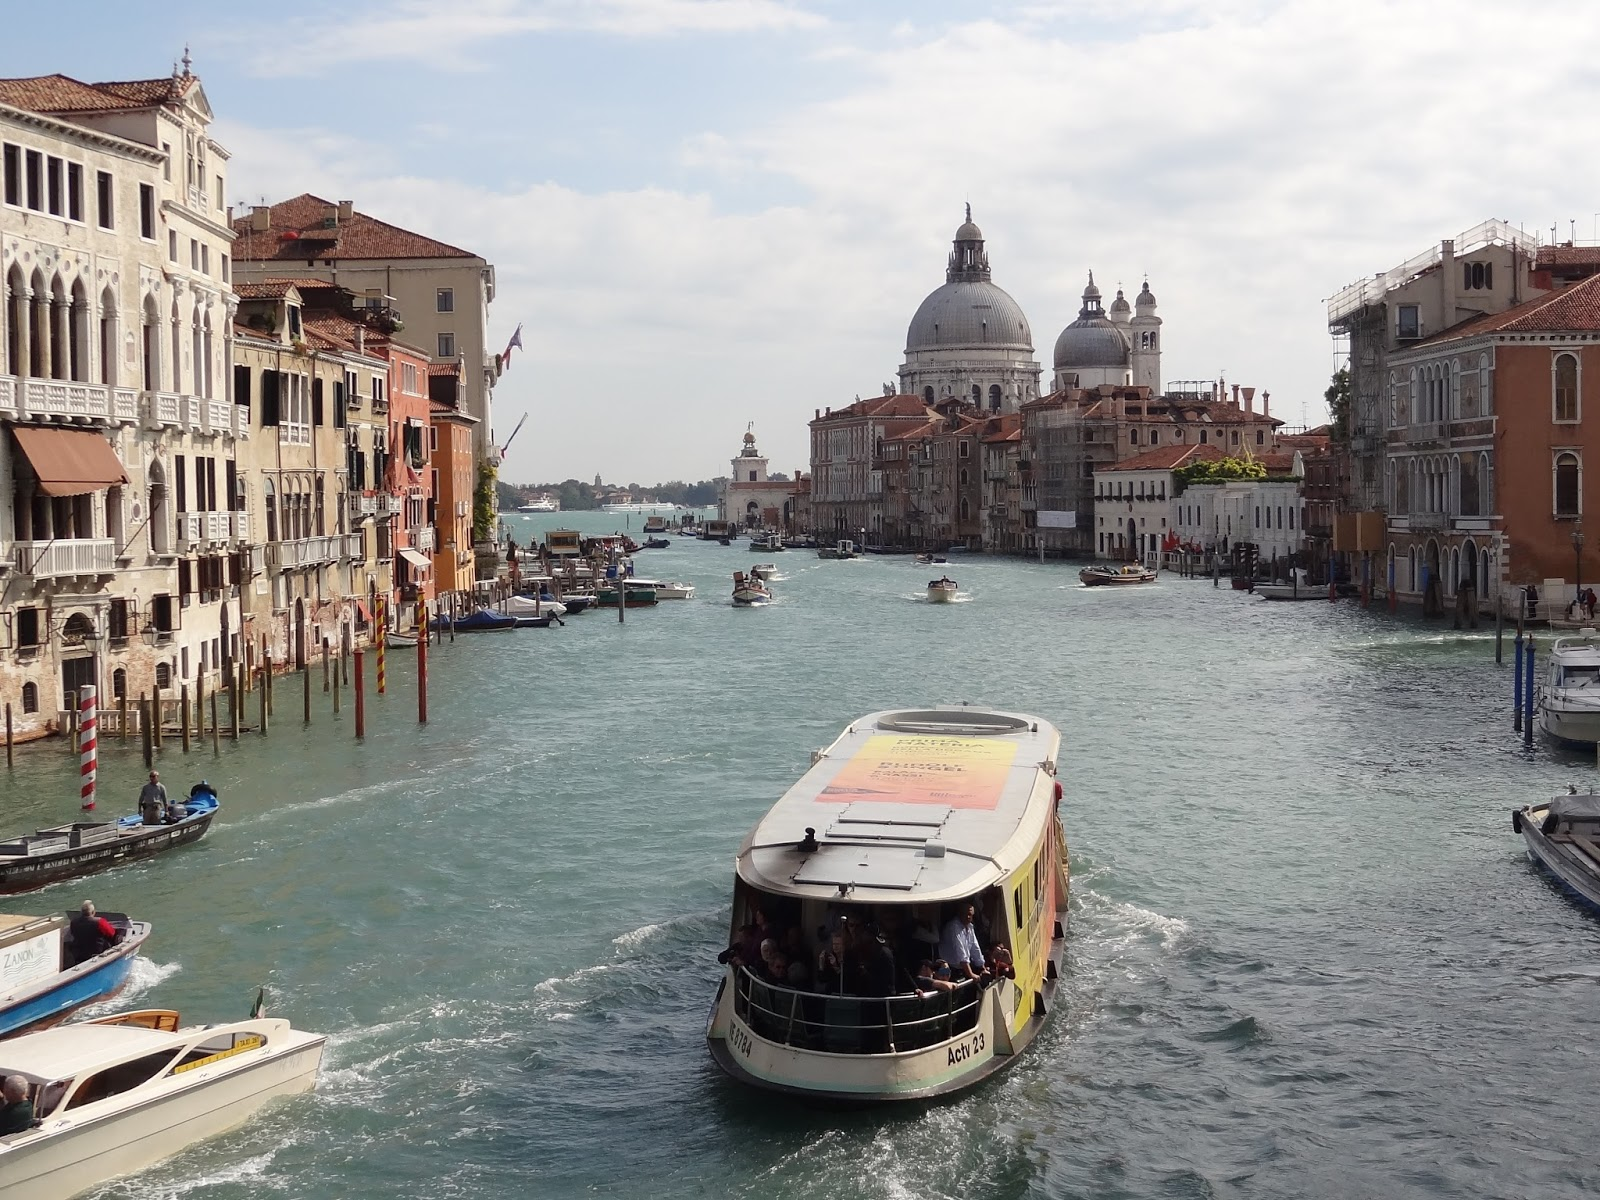 view of Venice Grand canal with large water taxi and St. Mark's Basilica in distances